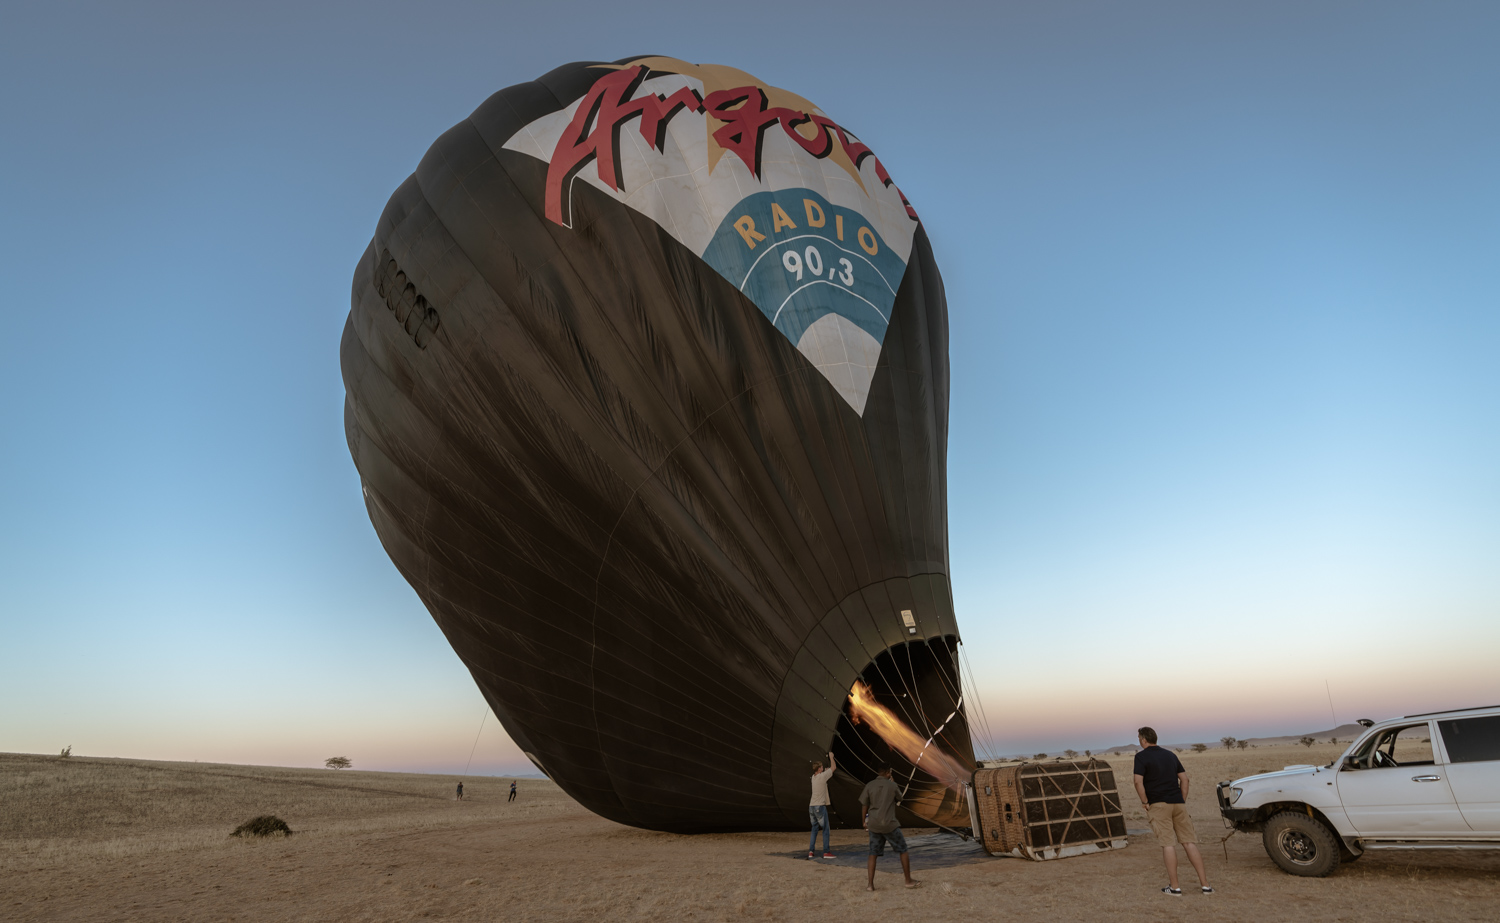 Preparing the balloon  - Solitaire, 15.2.2019, 6:15 AM -Samawati Hot Air Ballooning is based in Tsondab Valley or the Solitaire Area in Namibia. Photo: Roland Steffen - Sony A7r III, Sony FE 16-35 mm F/2.8 GM